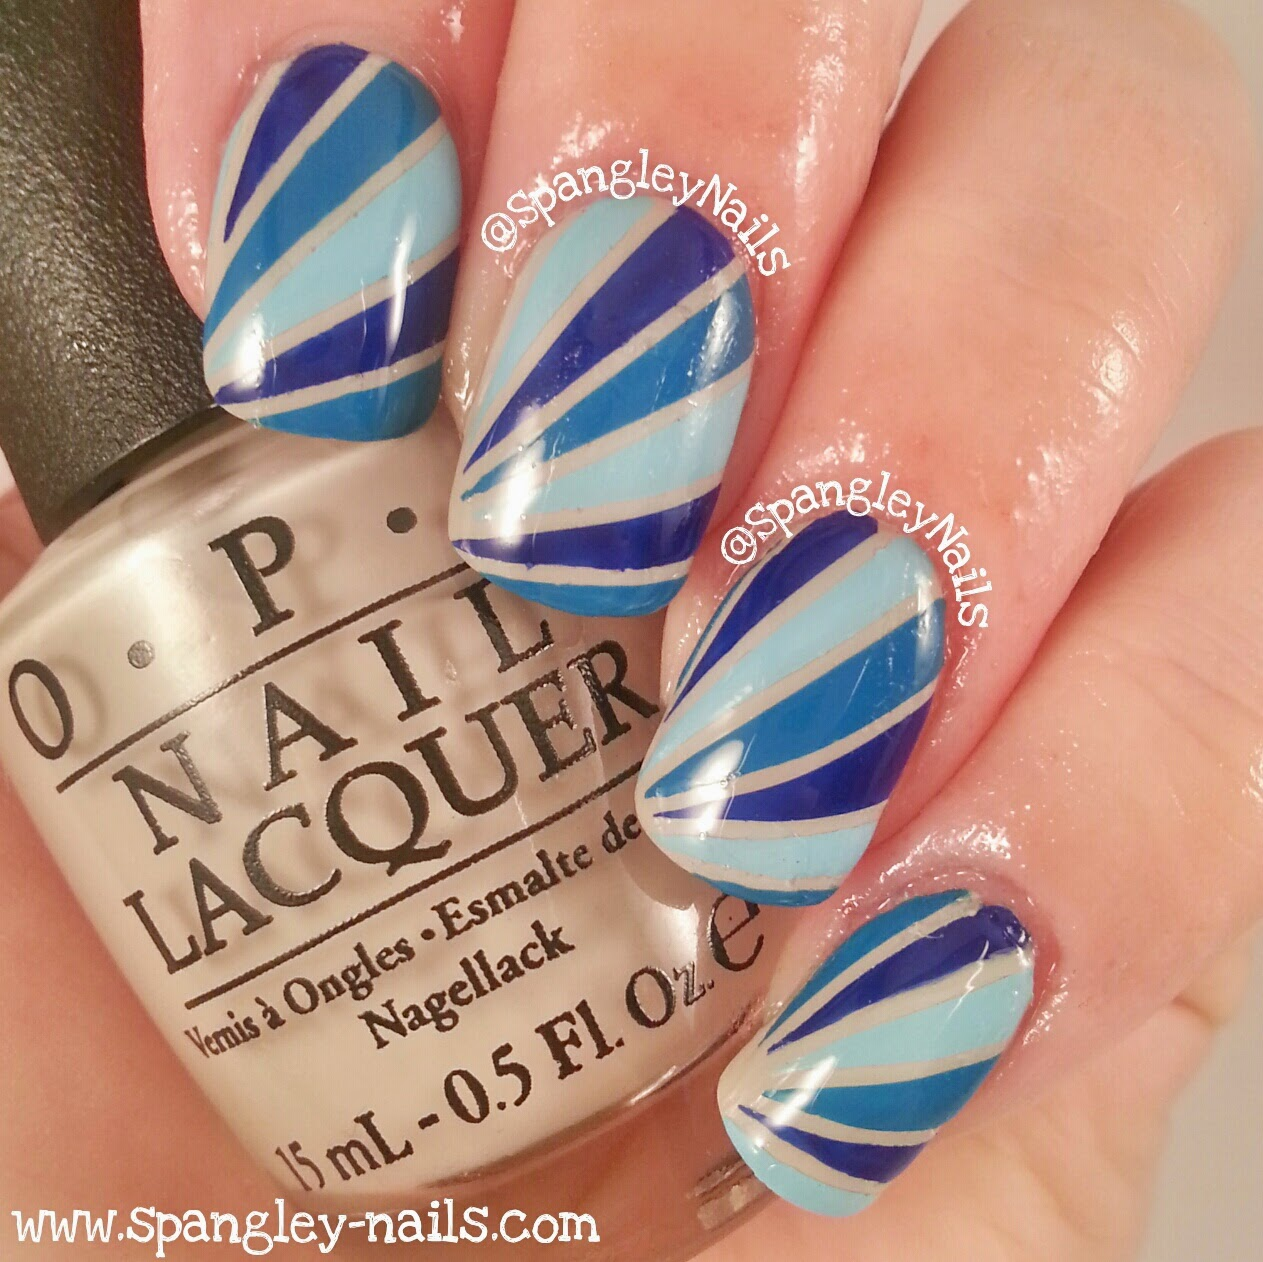 Striping Tape Nail Art Tutorial: UK Nail Art Blog: Feeling Blue? Striping